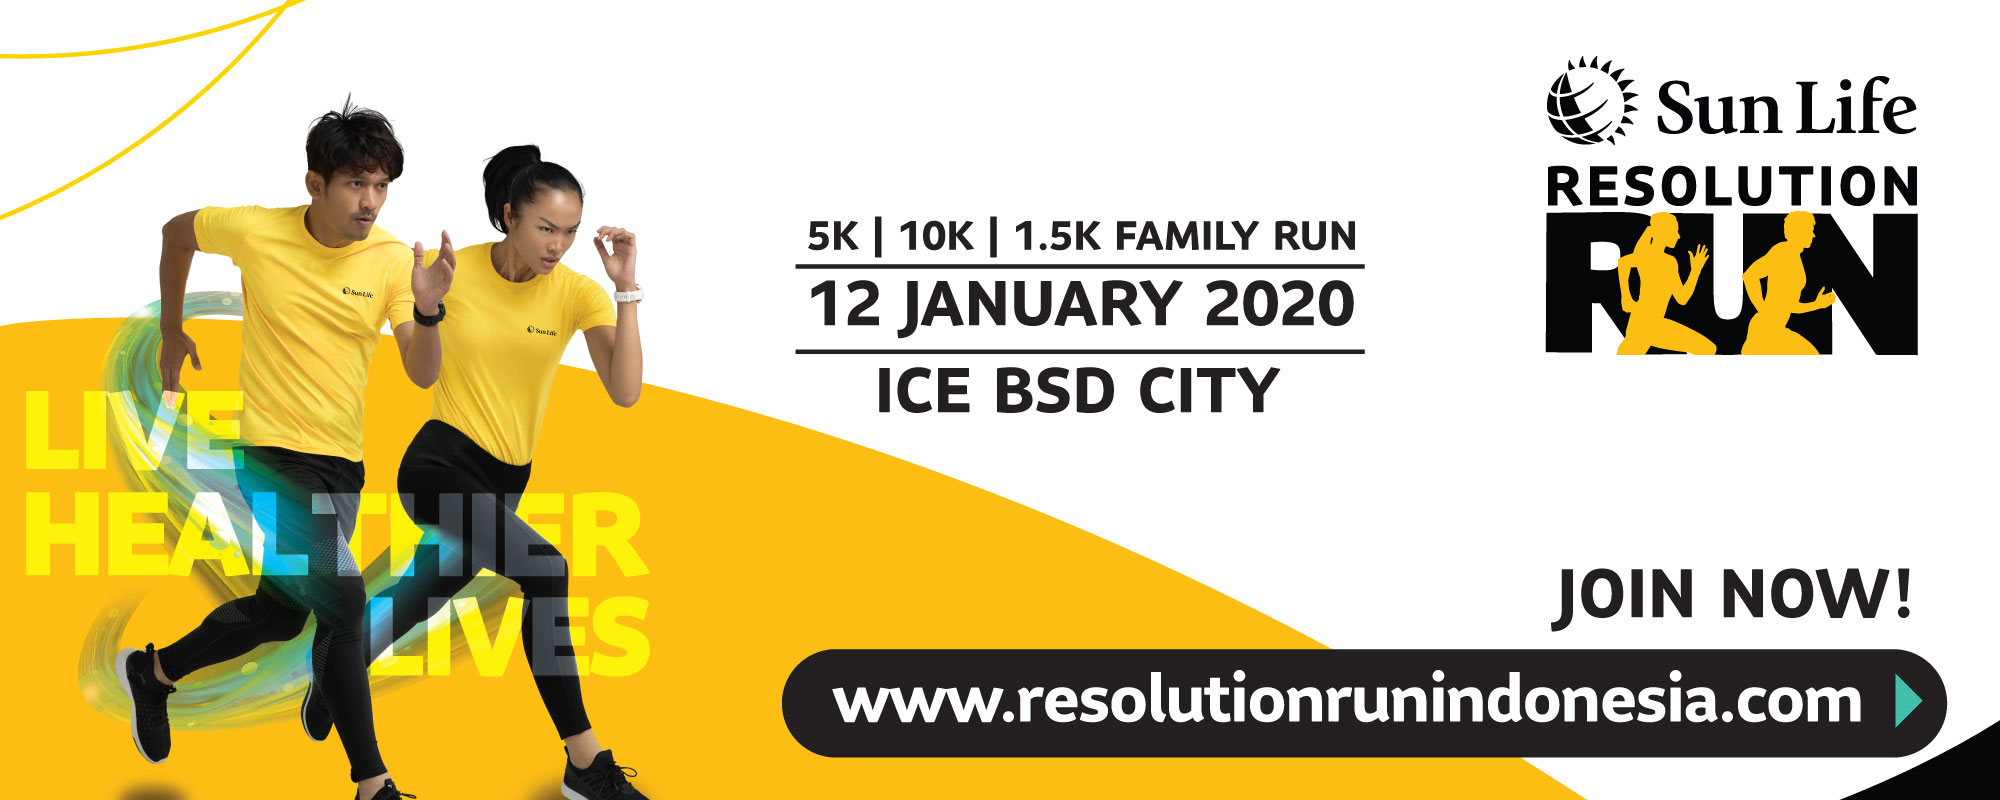 SunLife Resolution Run 2020